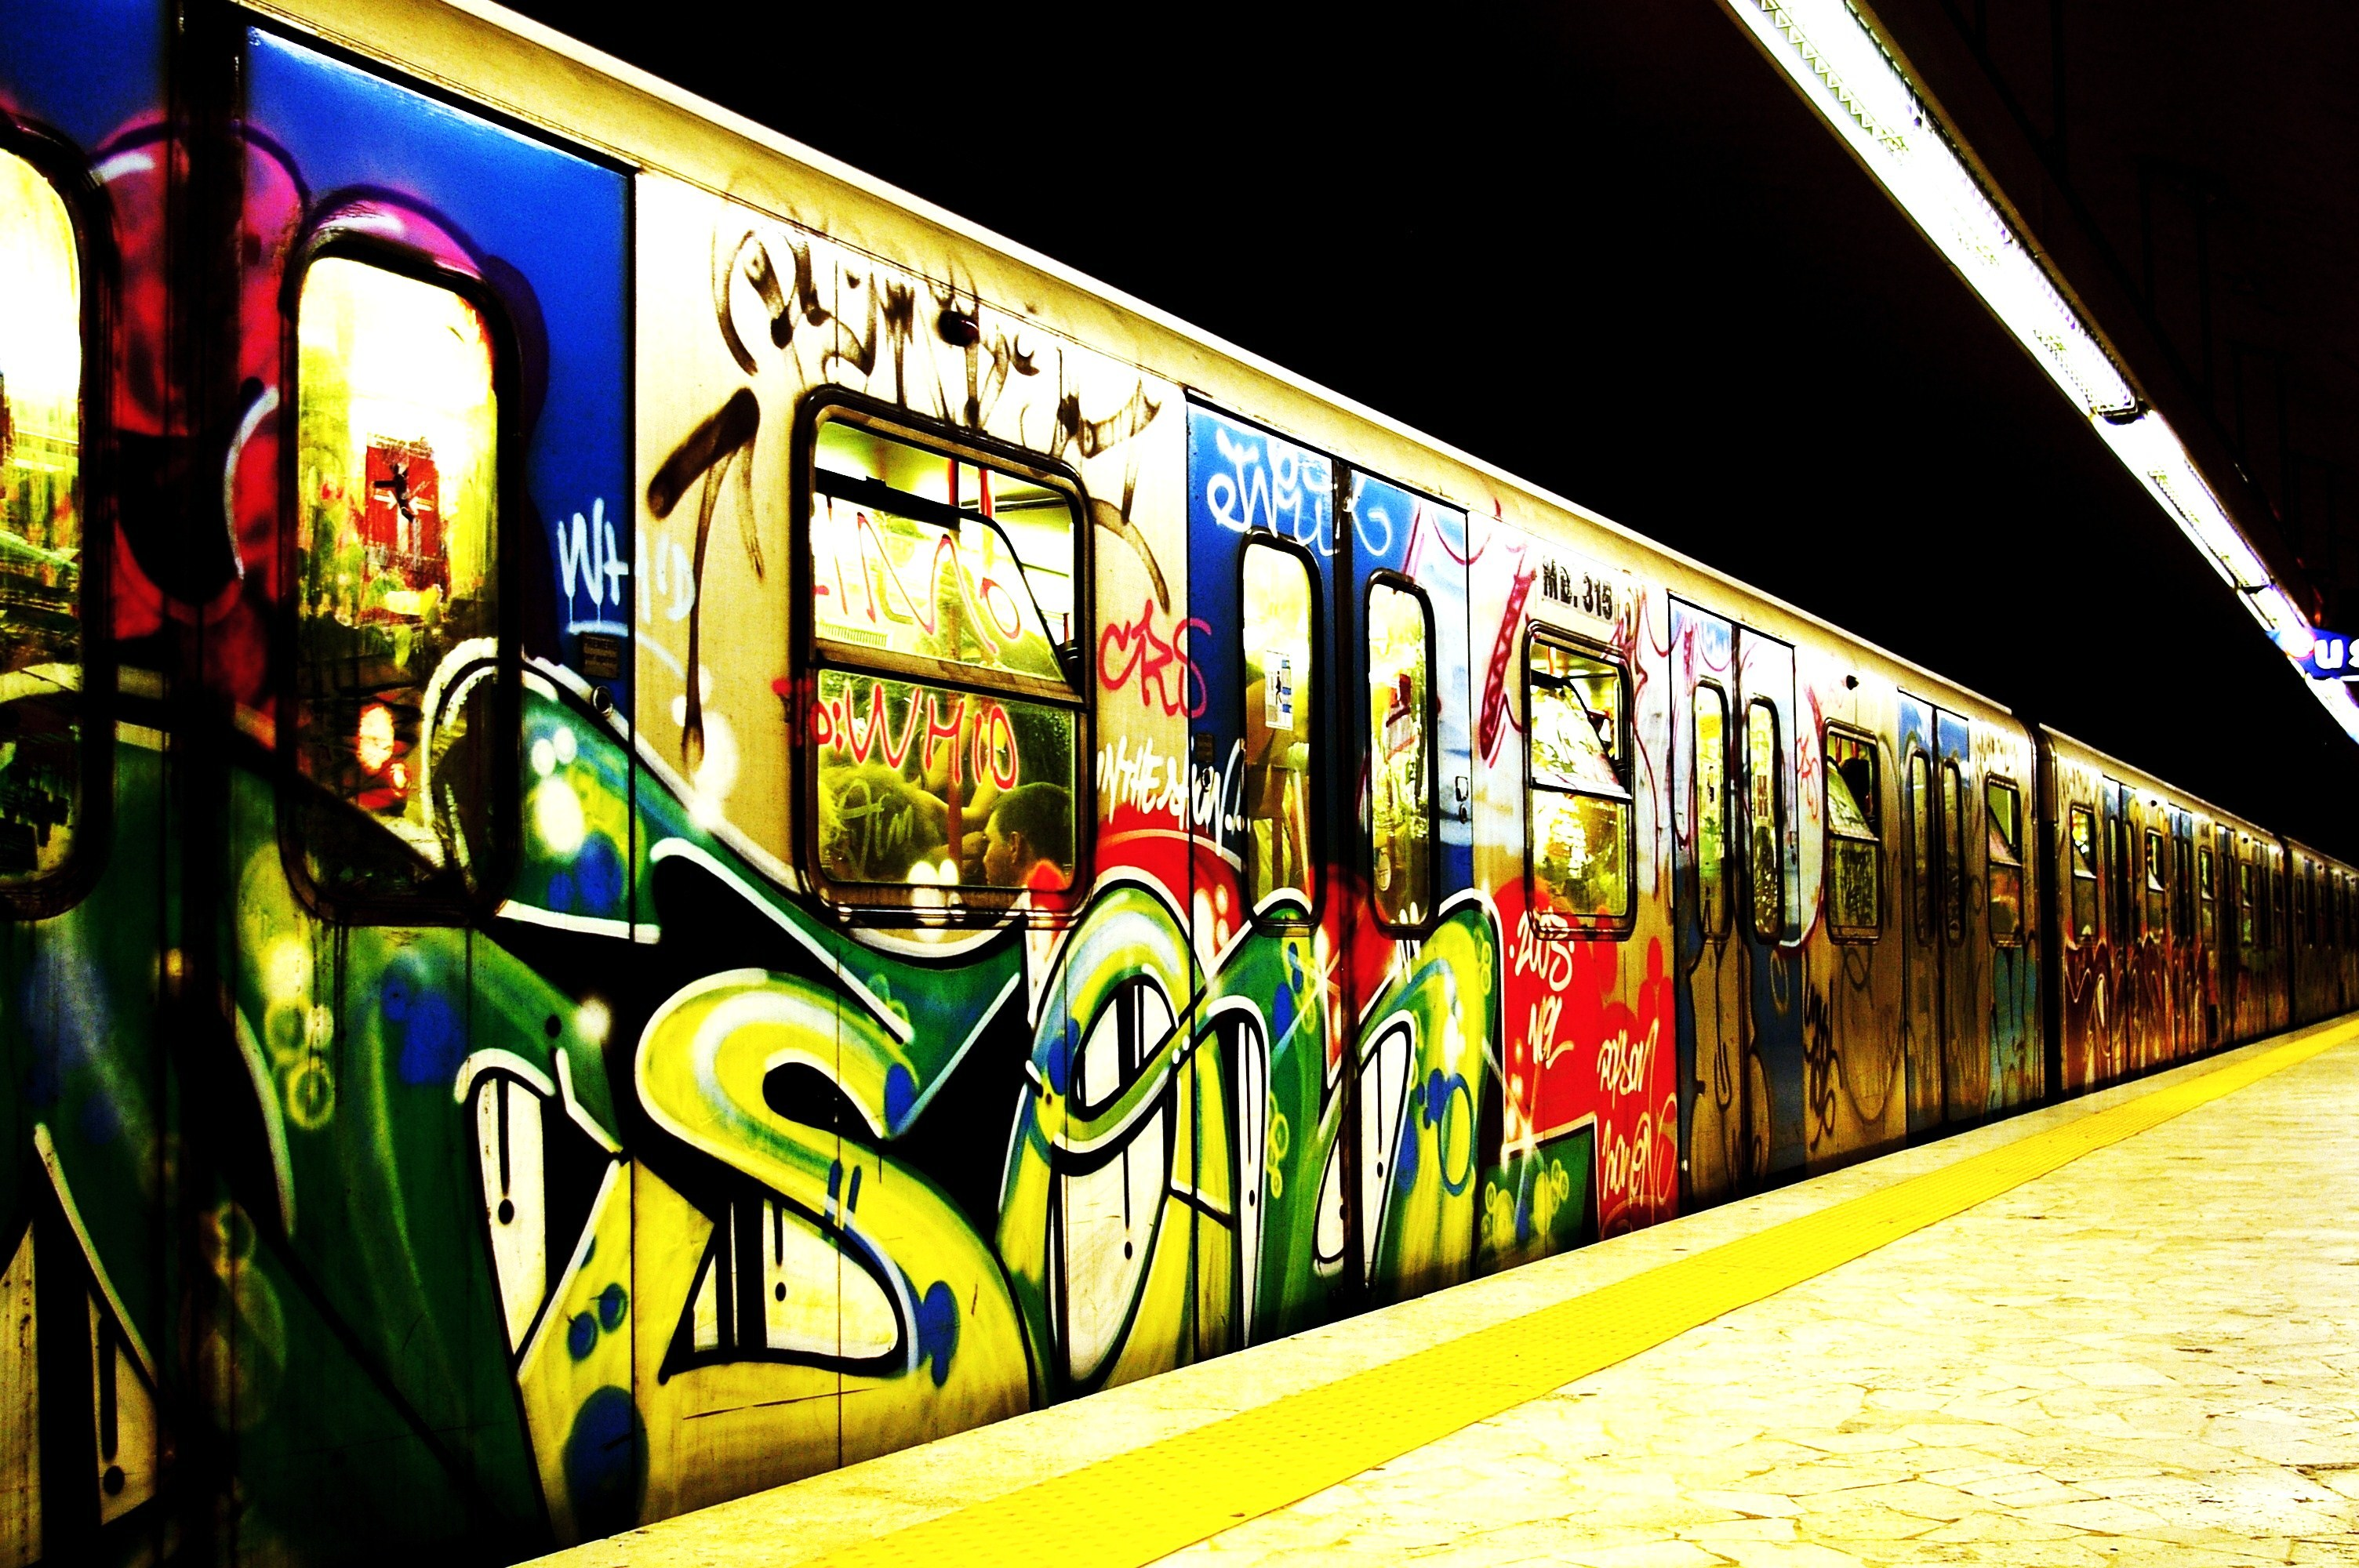 subway street art HD Wallpaper